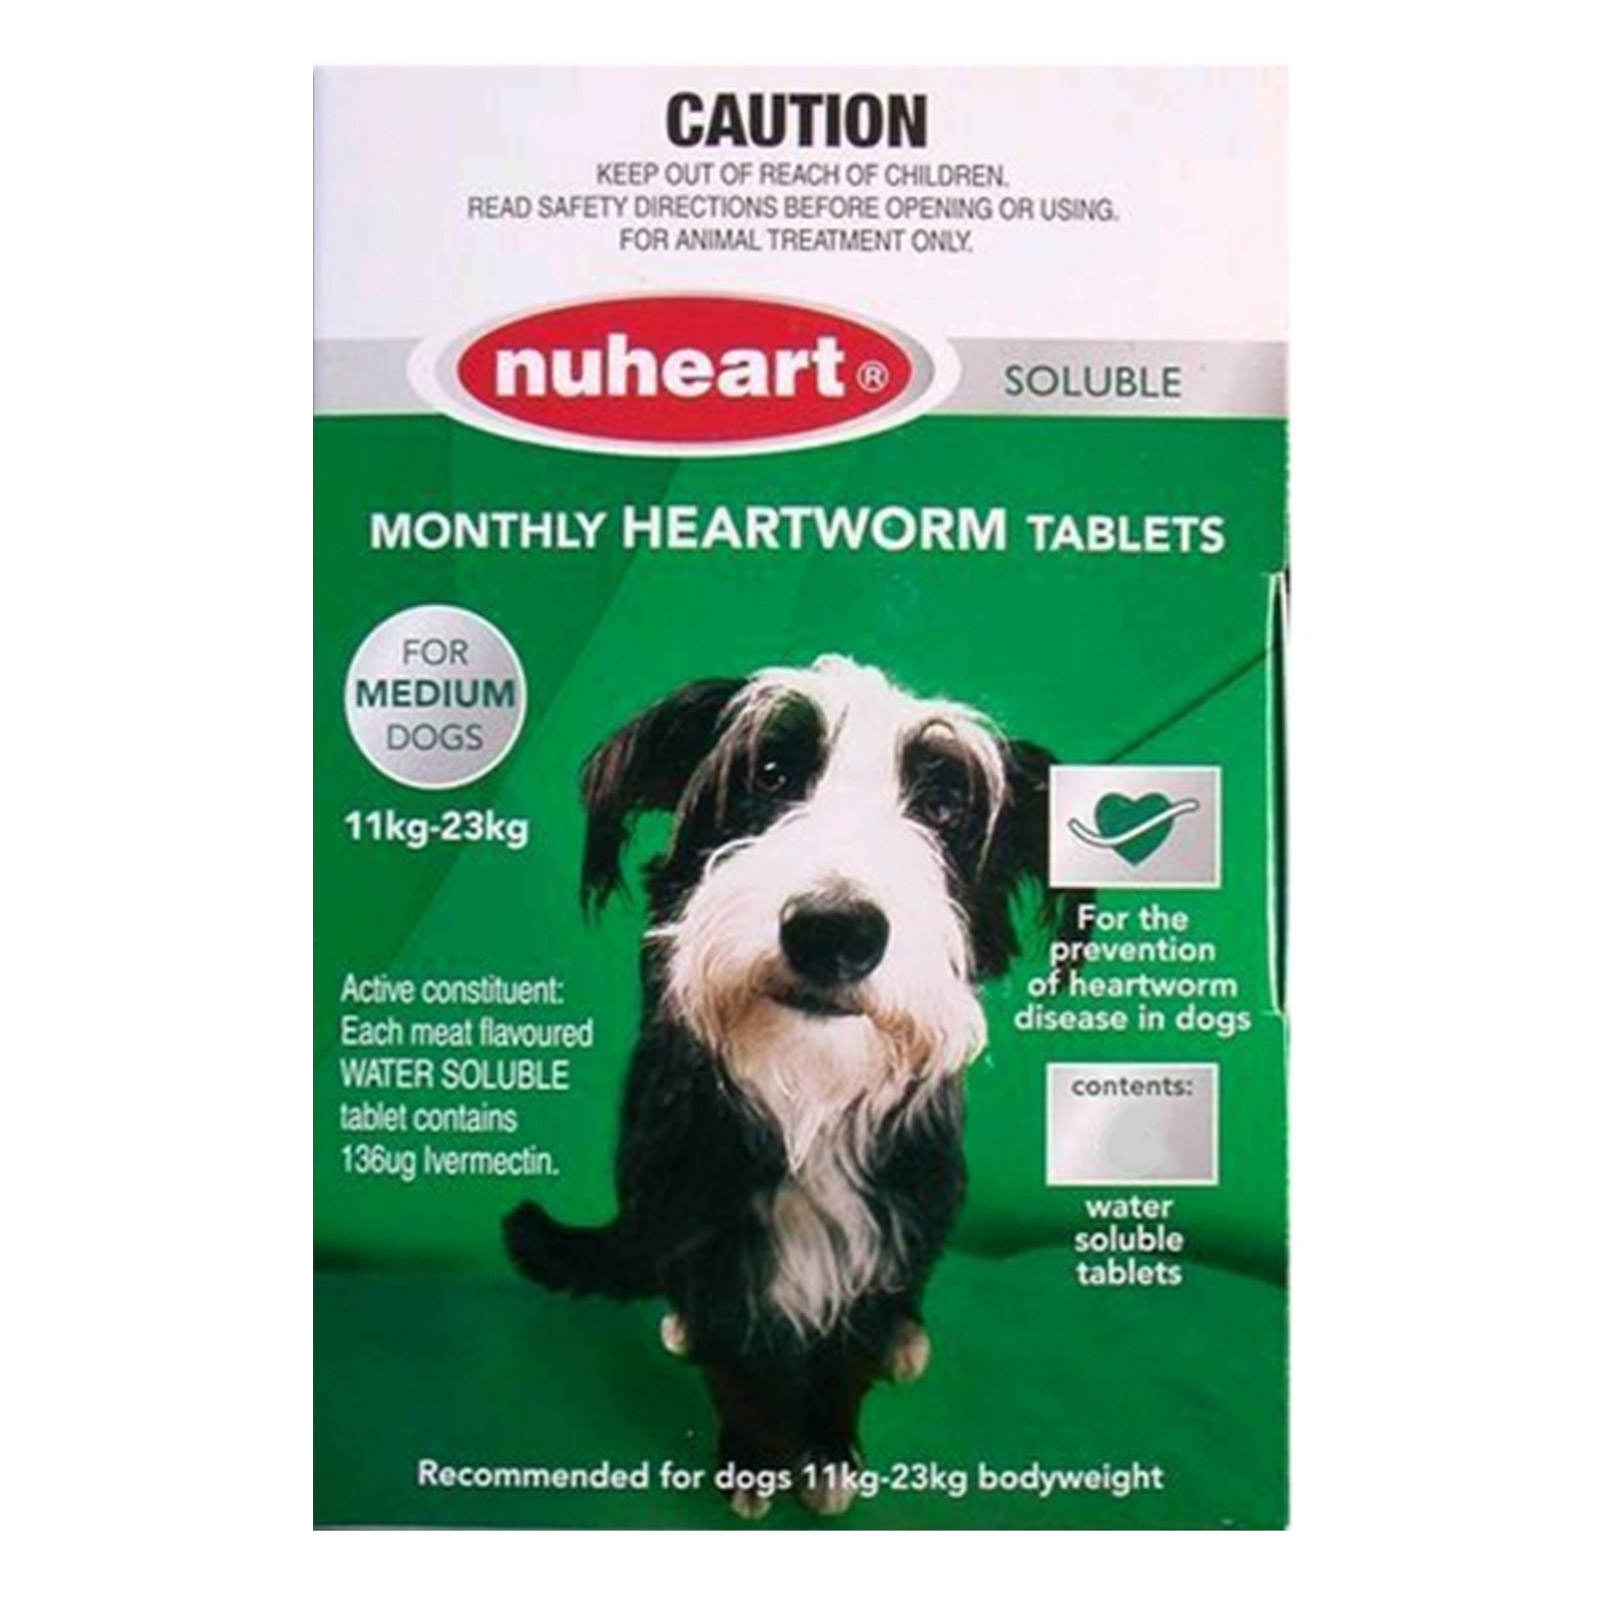 Generic Heartgard Tabs For Medium Dogs - Nuheart 11 To 23Kg (Green)